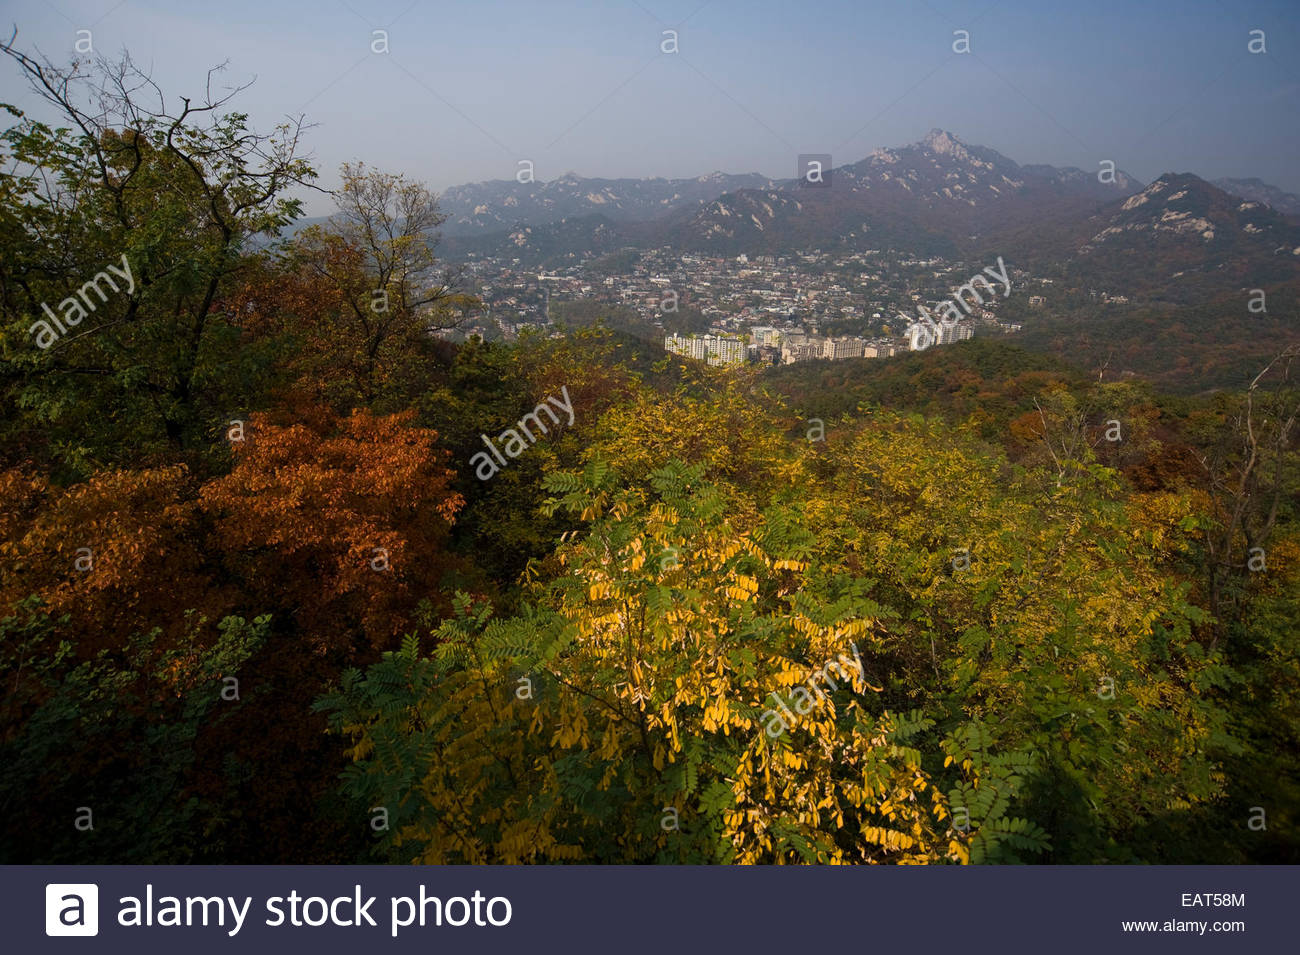 Trees in fall colors partially obscure the sprawling city of Seoul. - Stock Image